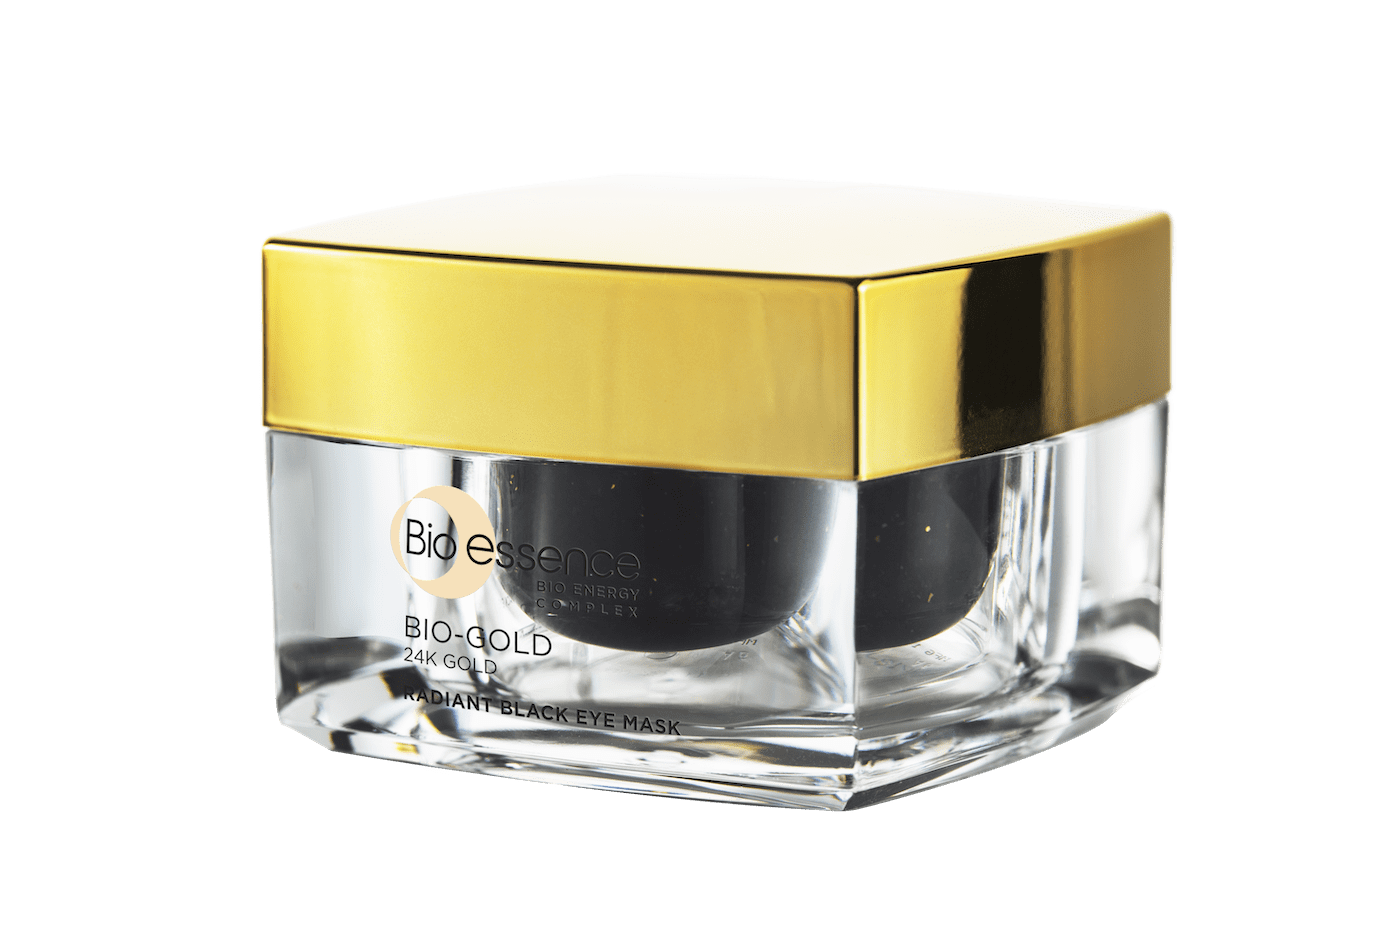 Bio-essence Bio-Gold Radiant Black Eye Mask | Honeycombers SG Beauty review | May 2020